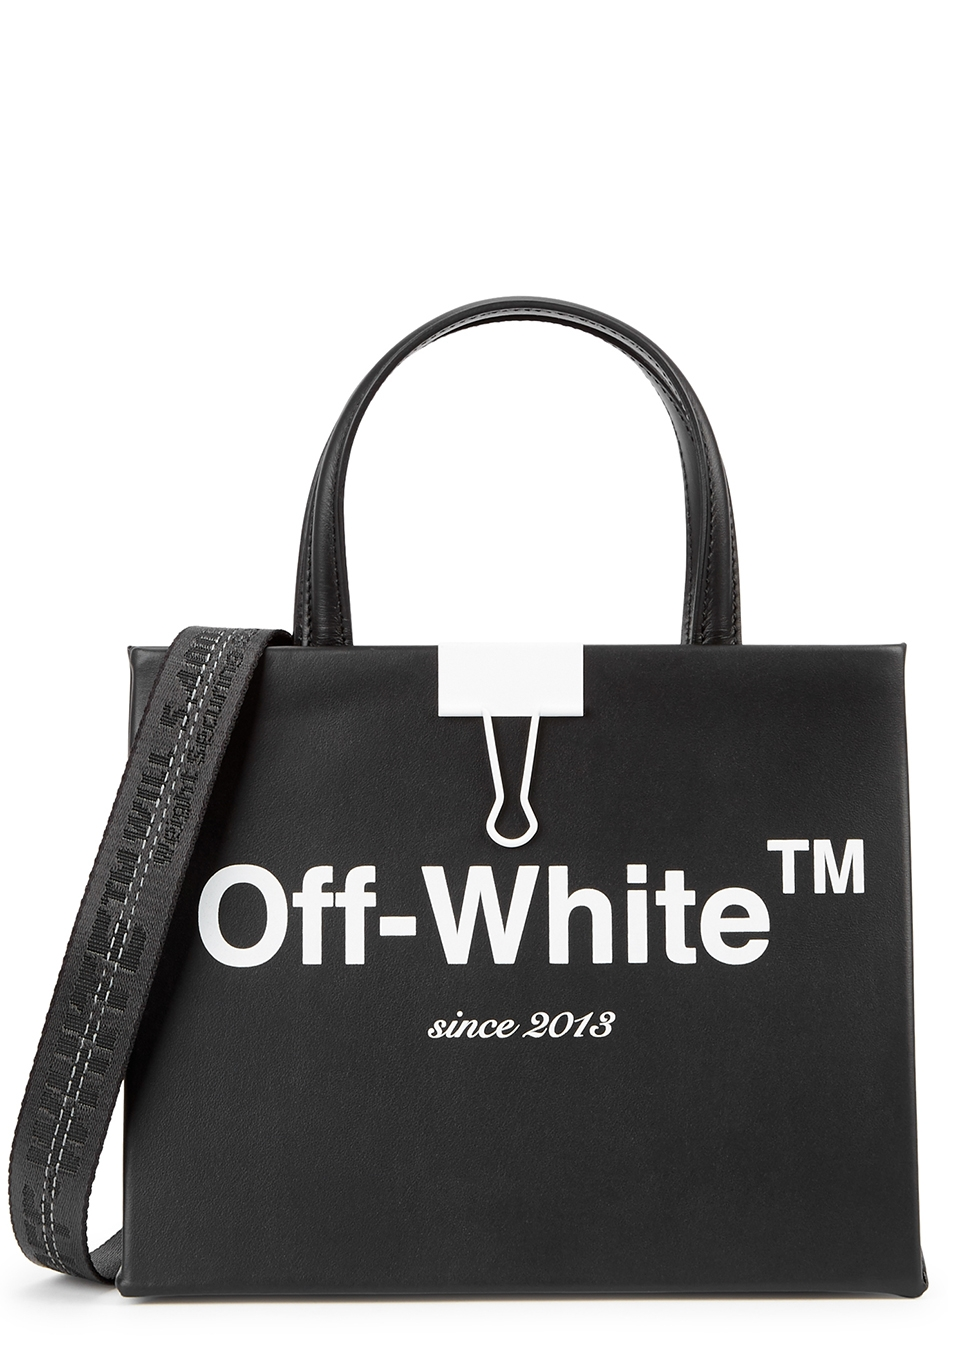 Sculpture mini leather top handle bag - Off-White